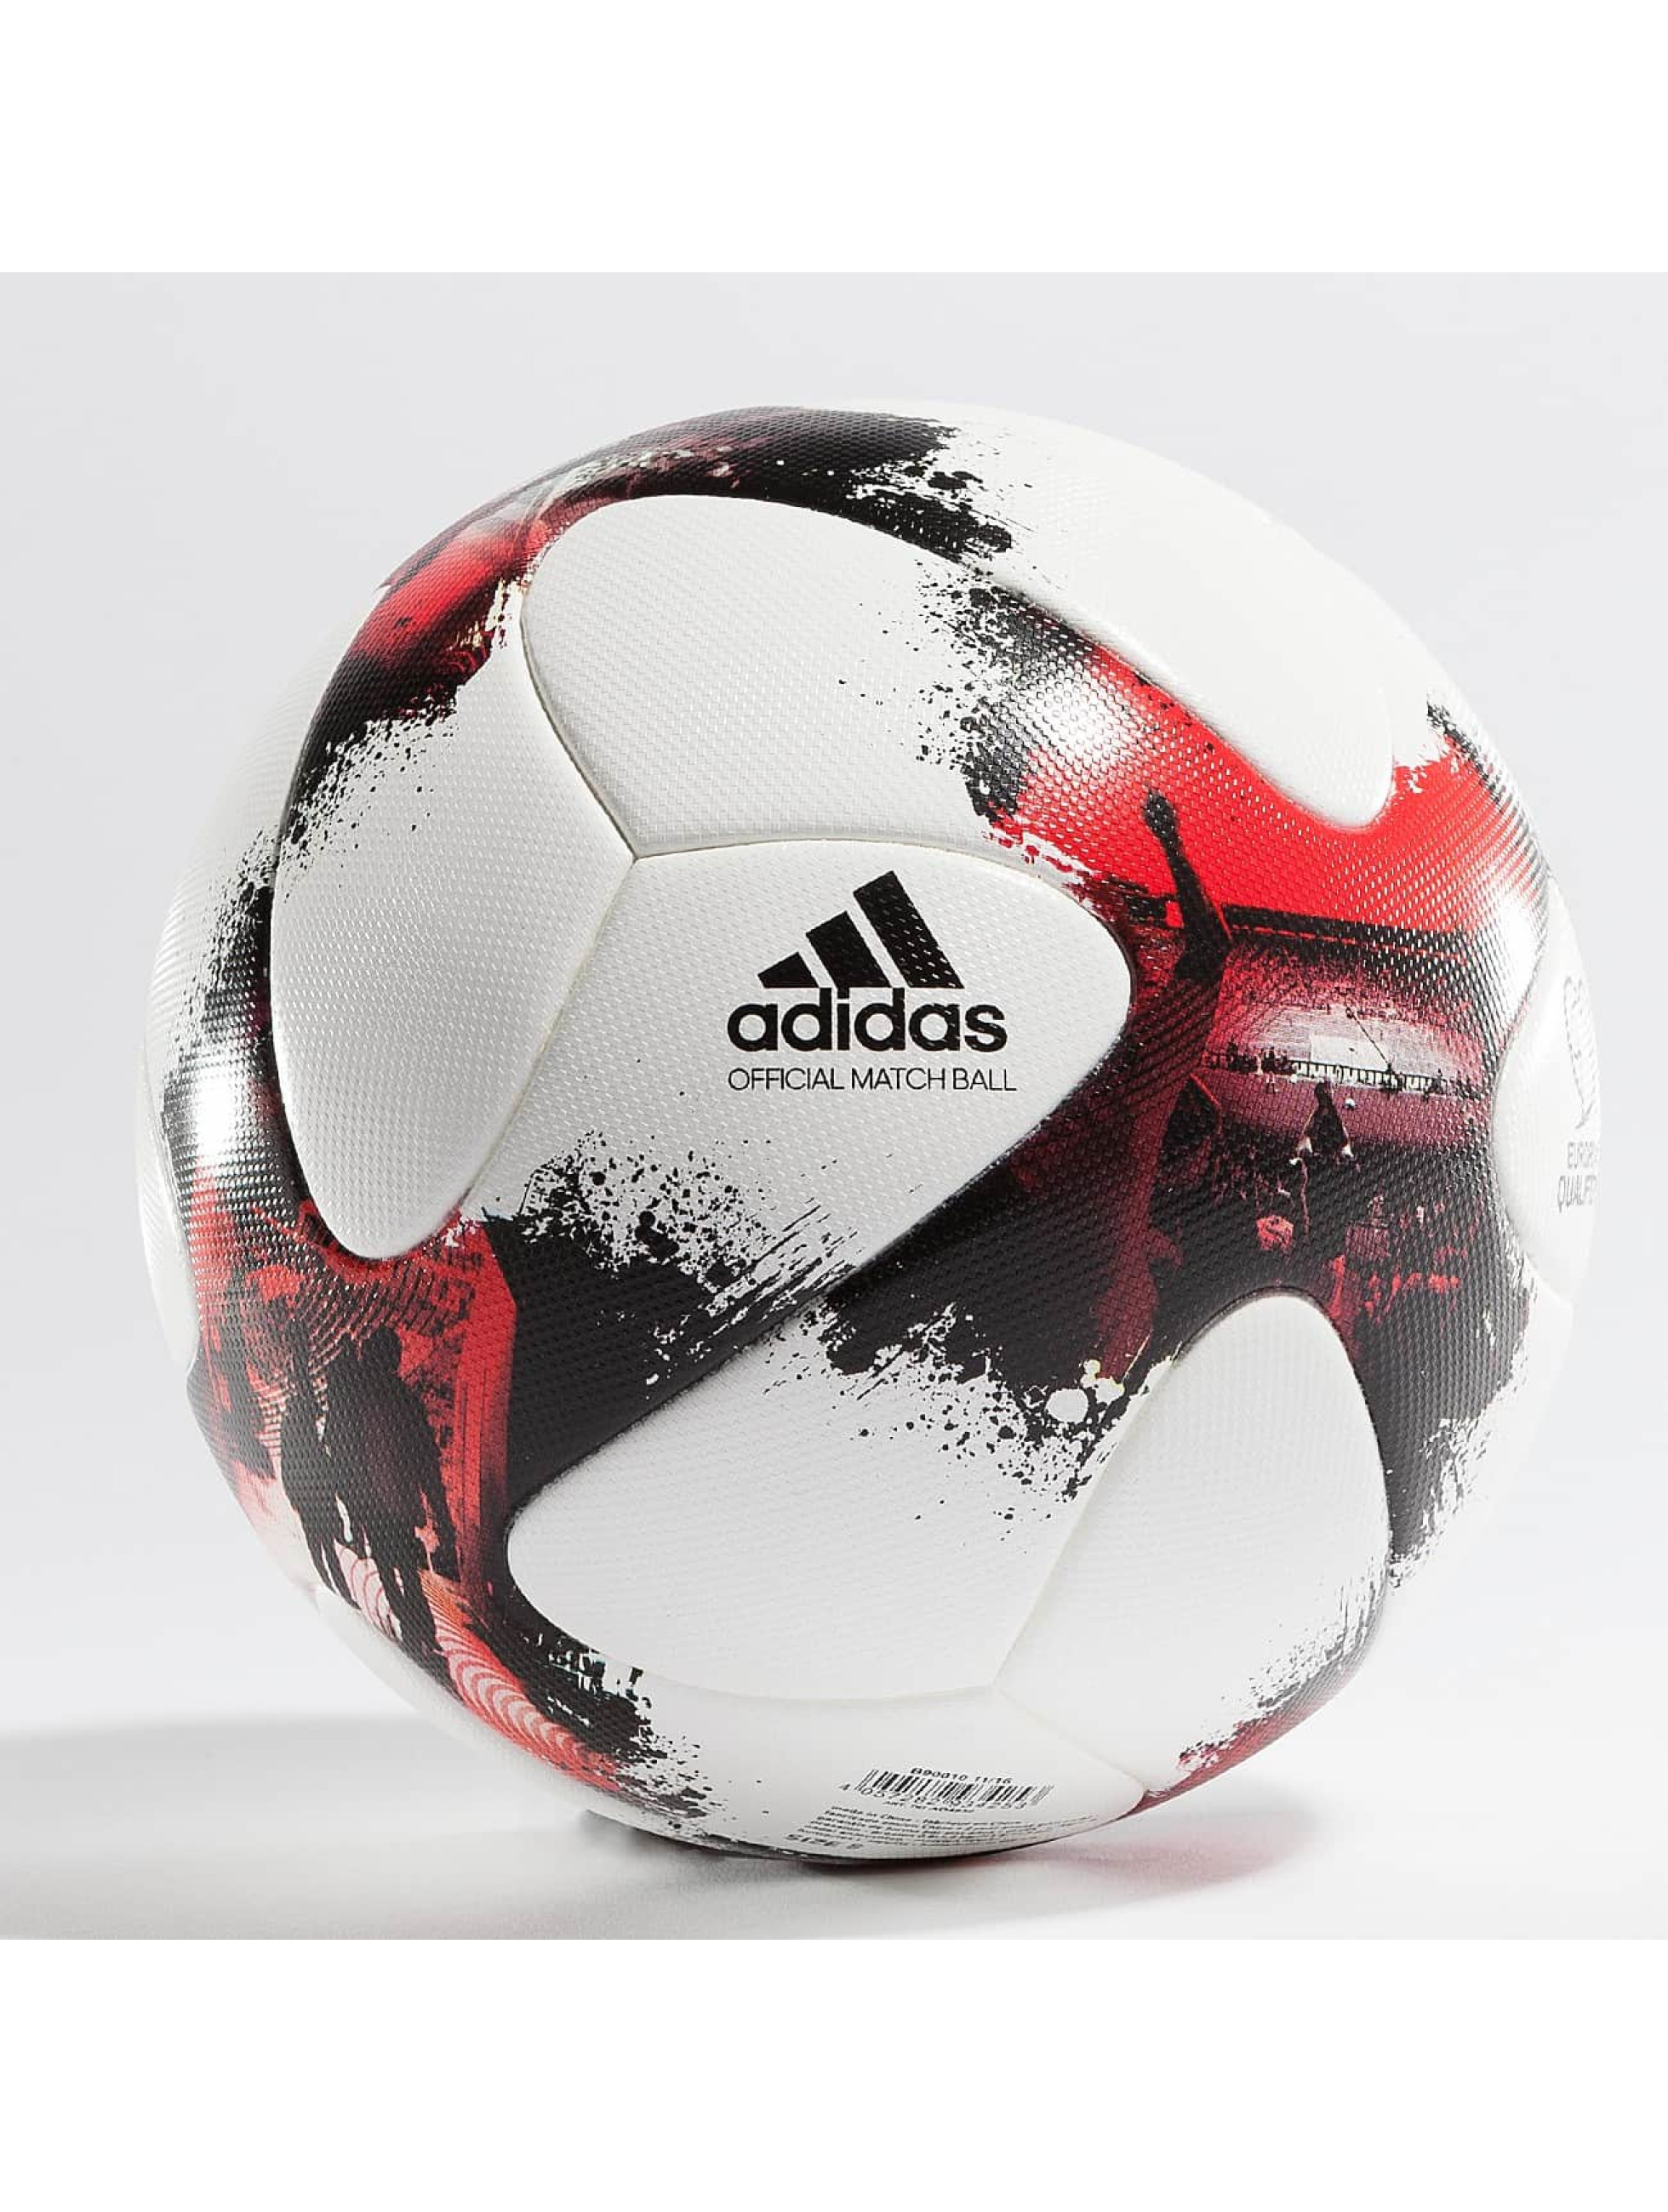 adidas Performance Ball European Qualifiers Offical Match Ball white